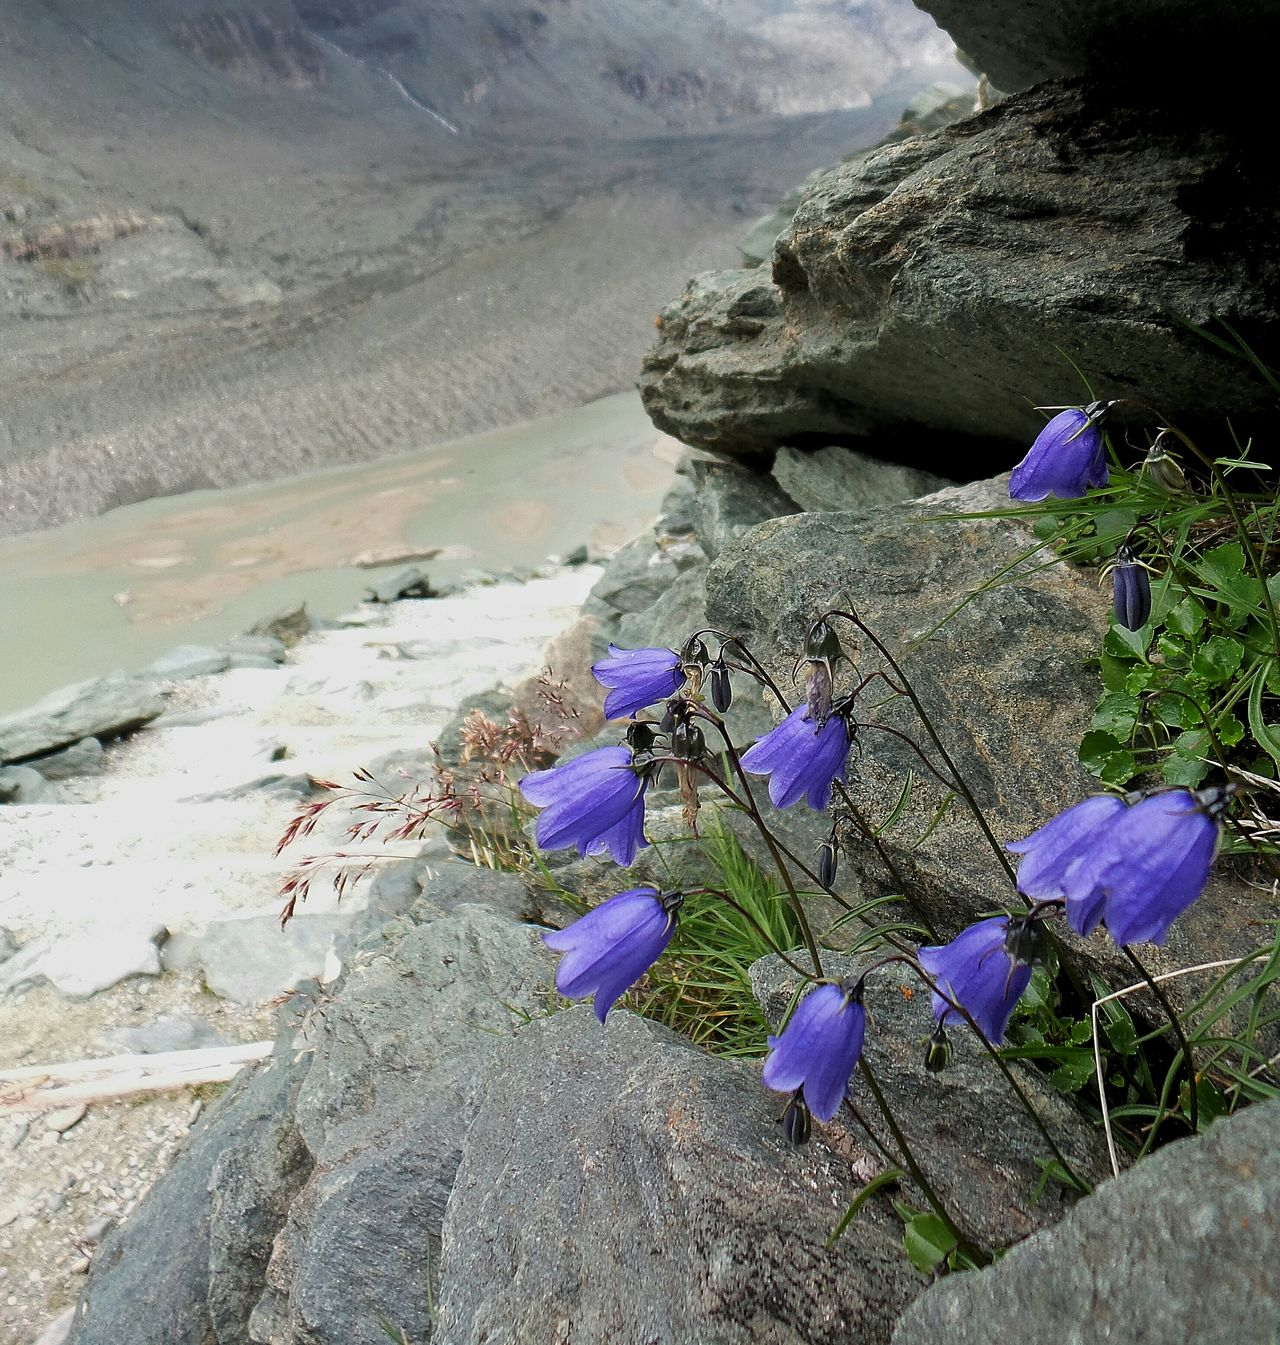 Chance Encounters Nature Flower Beauty In Nature Freshness Fragility Close-up Day Outdoors Happiness Monuments Of The World Grossglockner Grossglockner-hochalpenstrasse Winter Water Colorsofnature Glacier Violet Mountains Alps Alpi Austria